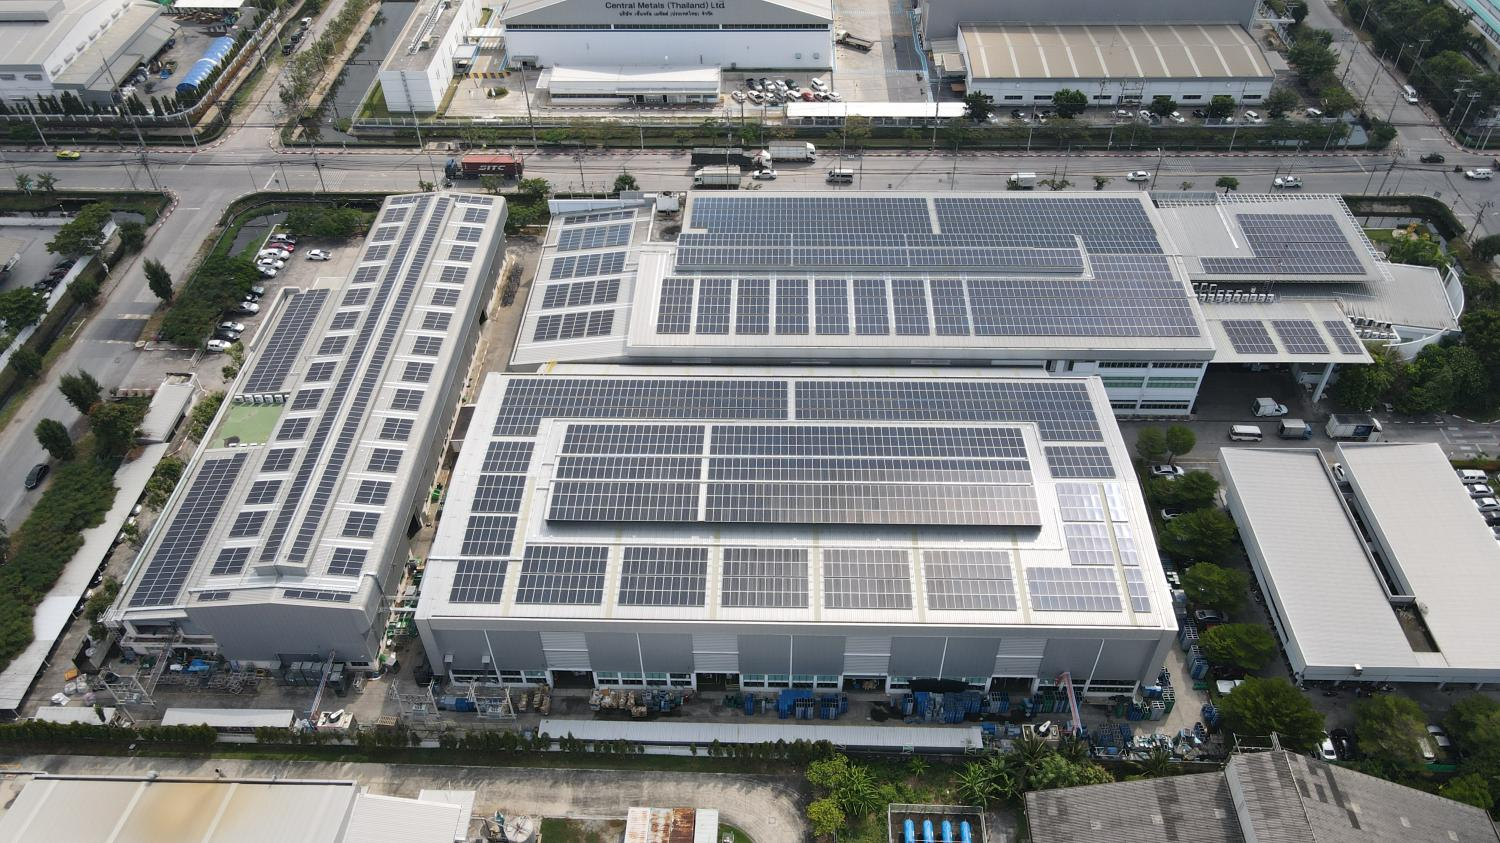 Rooftop solar panels are installed at an industrial site to take advantage of the larger surface areas. Photo: Constant Energy